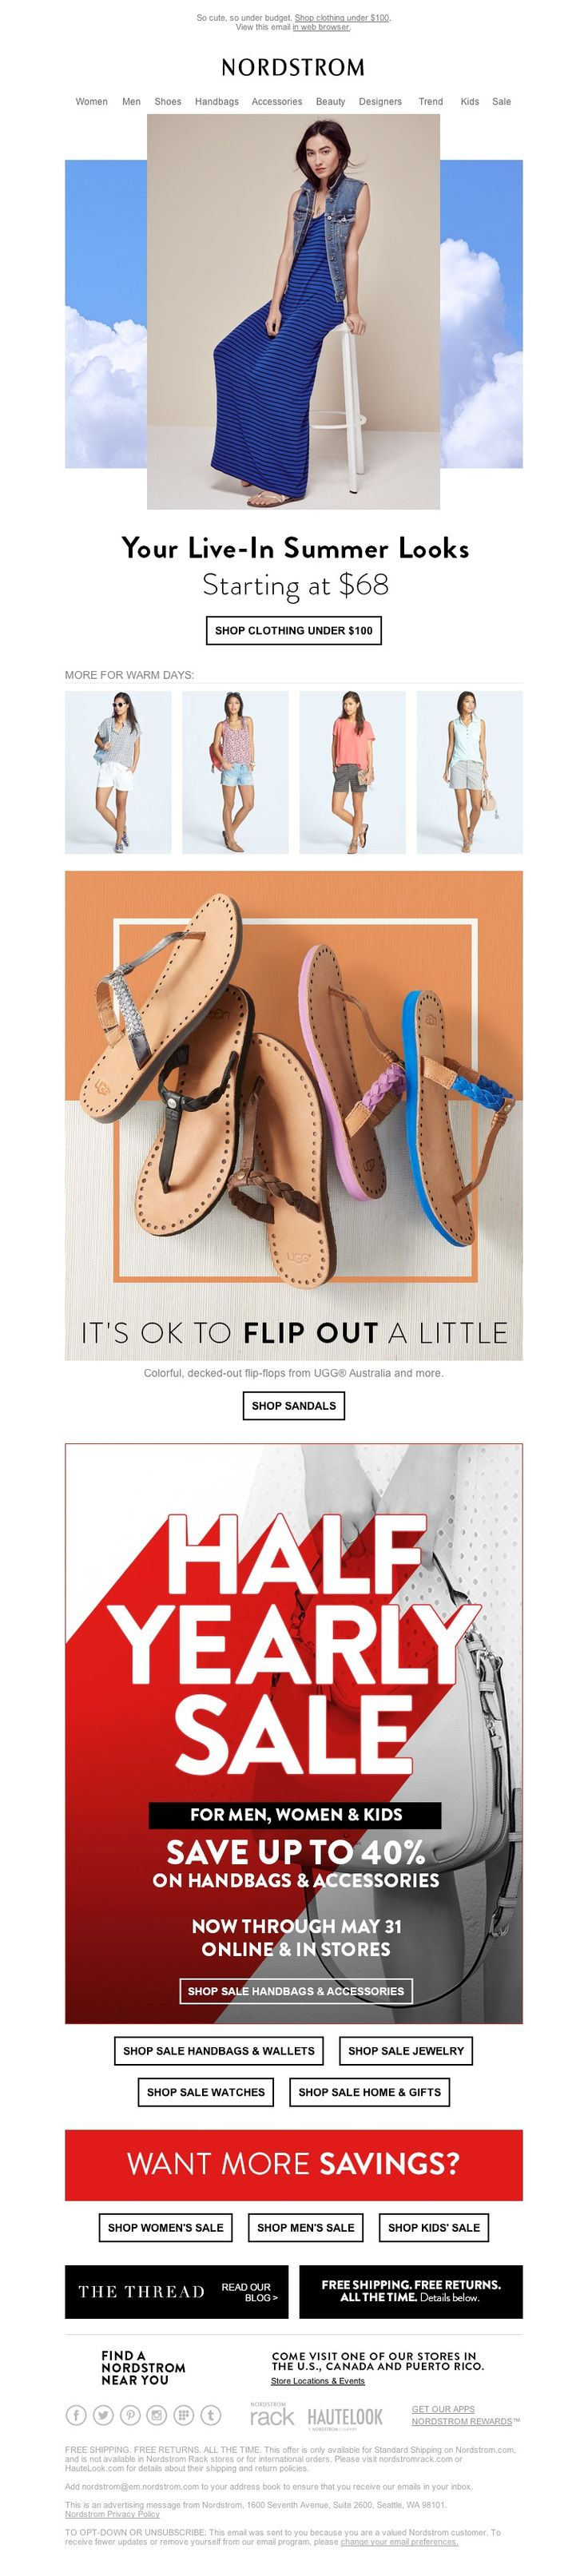 Nordstrom - Smile! Treat Yourself to Our Summer Staples for As Low As $68 + More for Warm Days